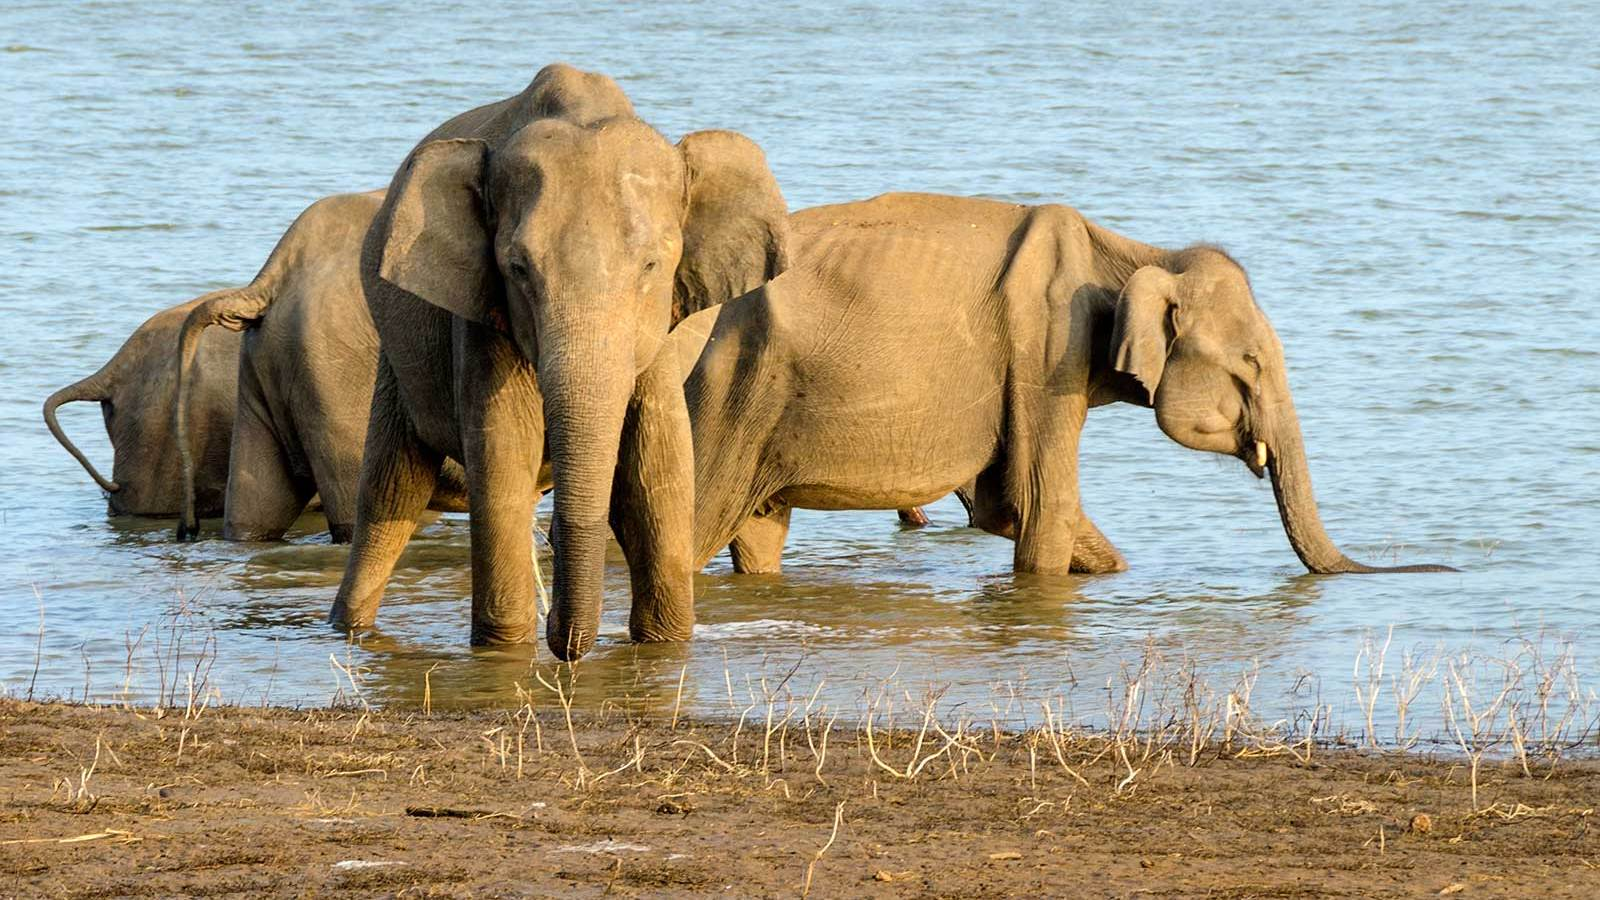 Where can you see the elephants in Sri Lanka?